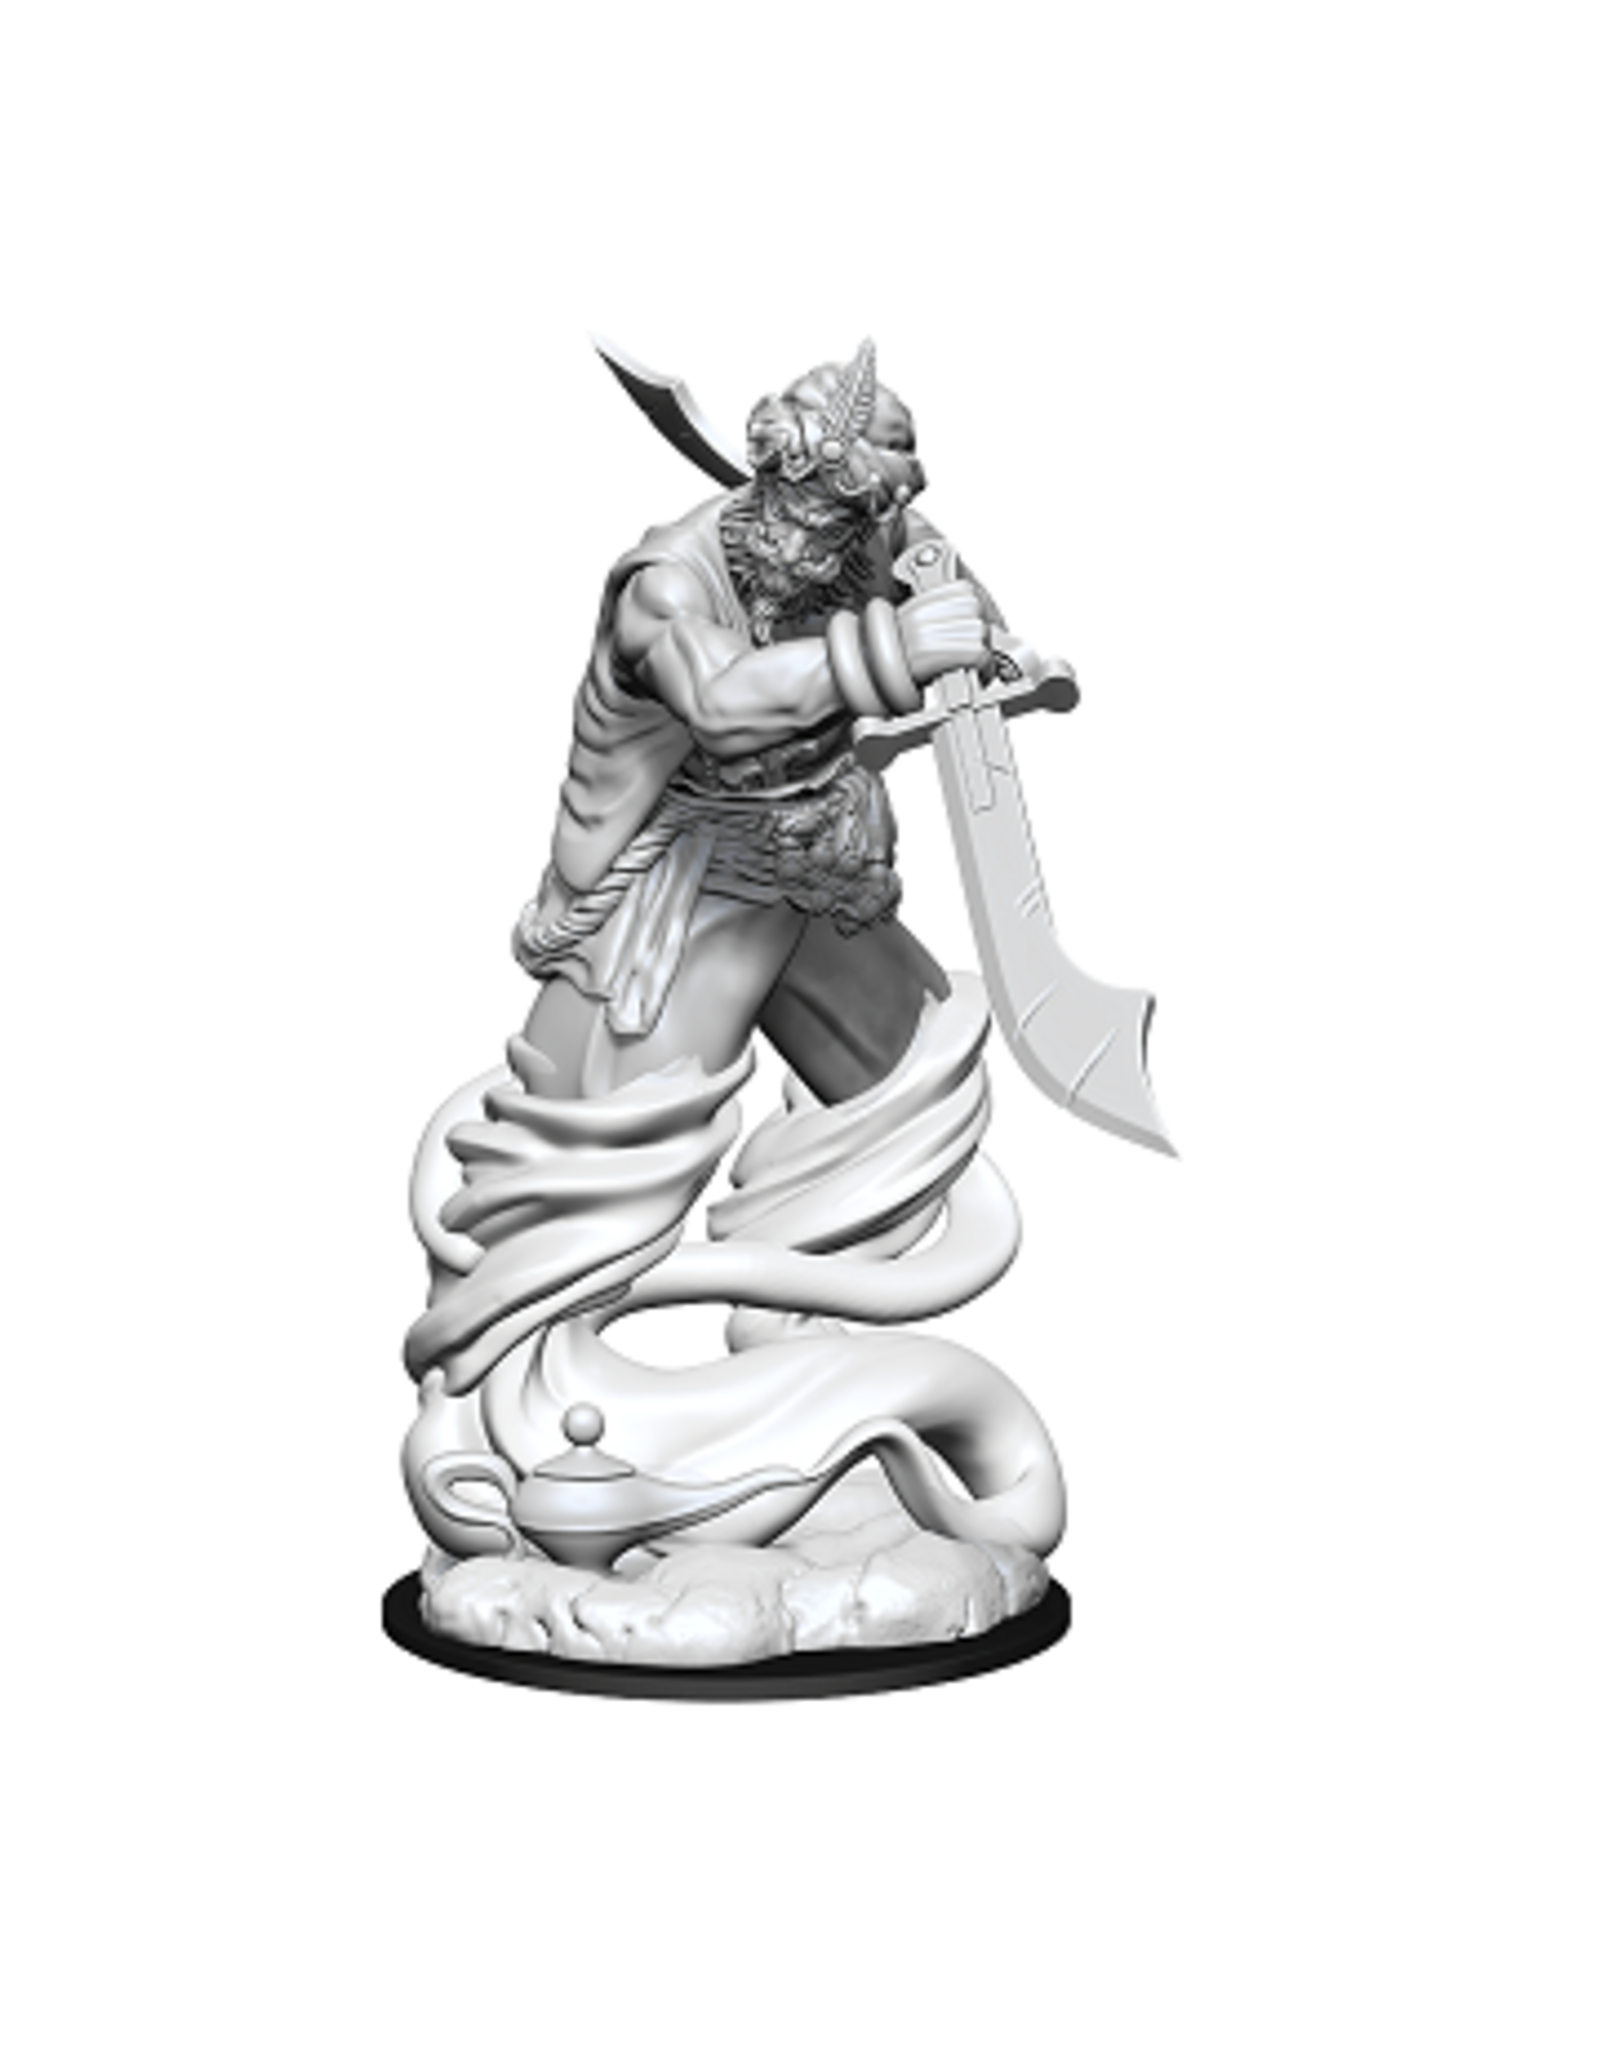 WizKids Dungeons and Dragons Unpainted Minis Wave 13 - Djinni